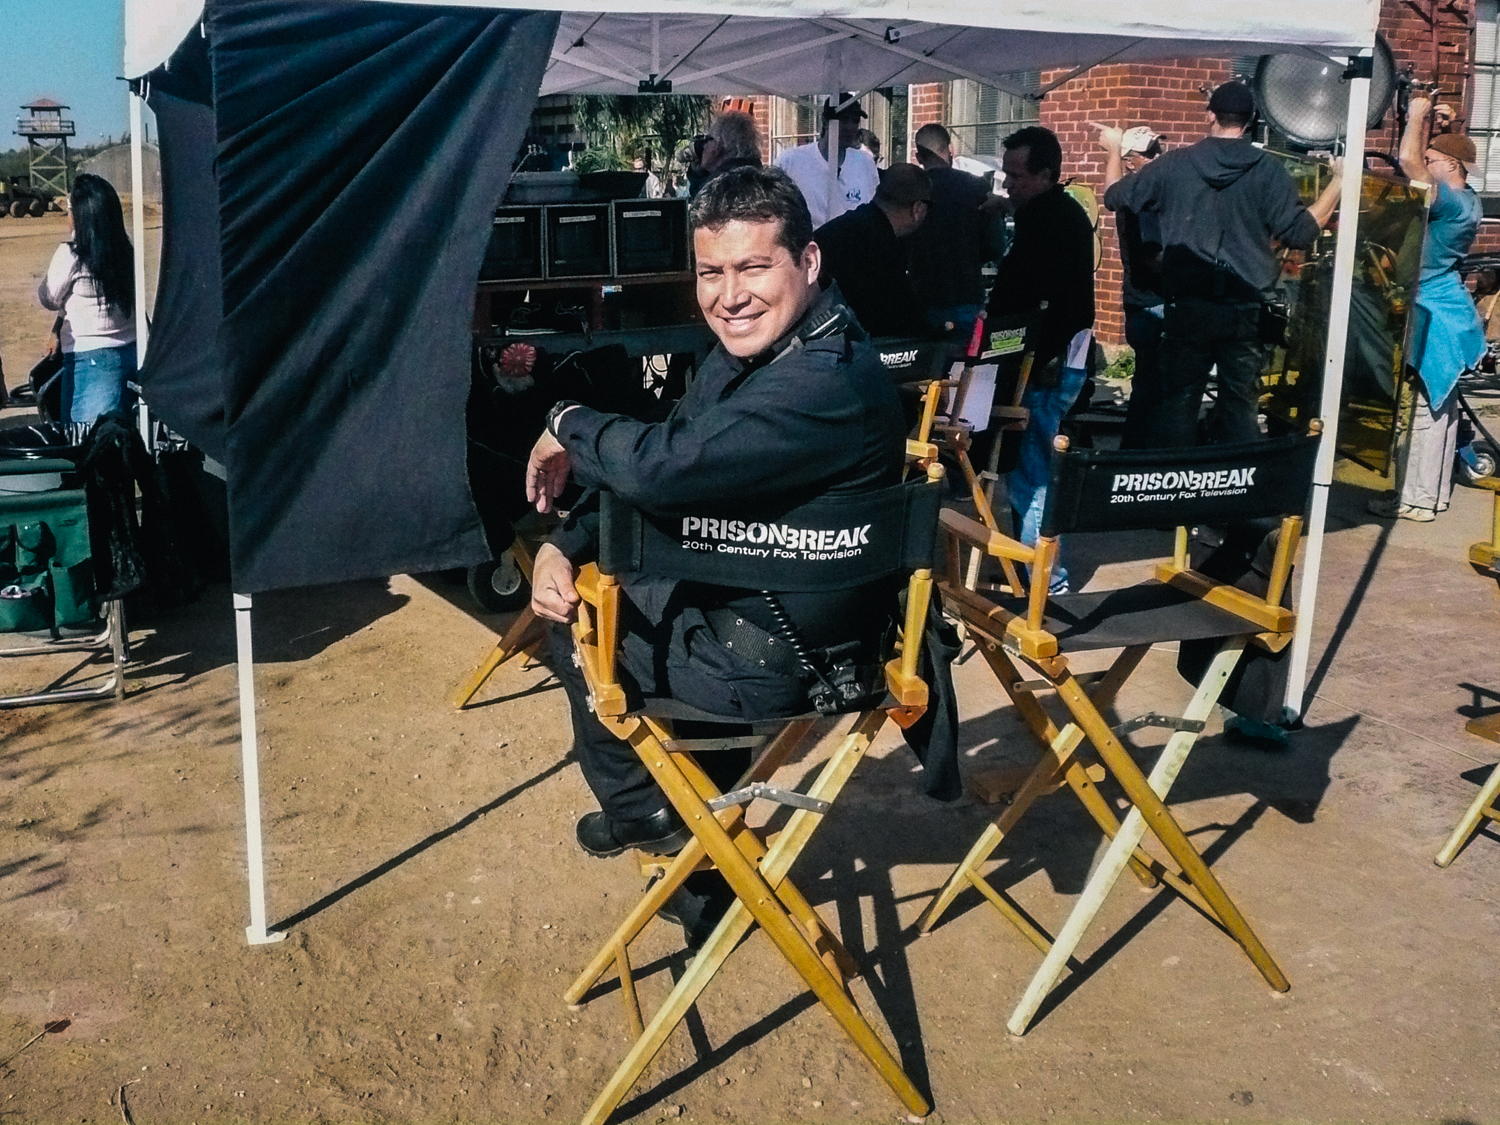 """""""Can't believe this series was shot in Dallas & my hometown of Fort Worth. Lucky for me."""" - Julio César Cedillo"""